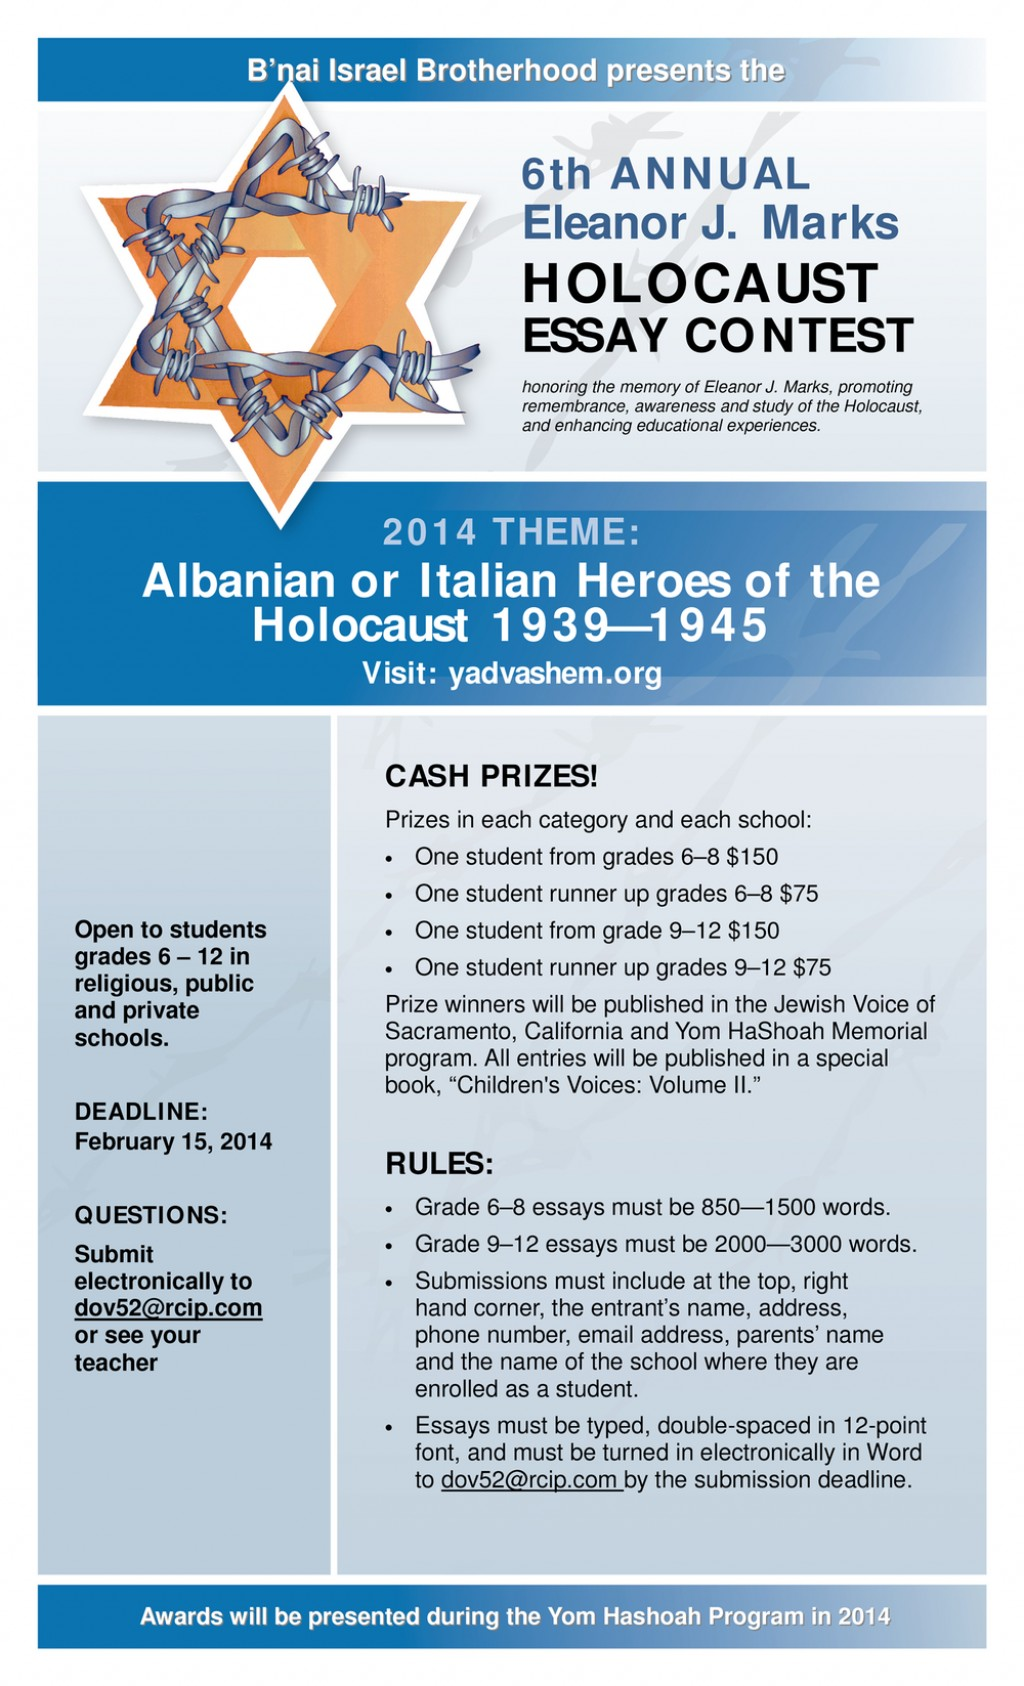 021 2014 Ejm Essayconttest Flyer 1500x2471 Essay Example Contests Imposing Maryknoll Contest Winners Large